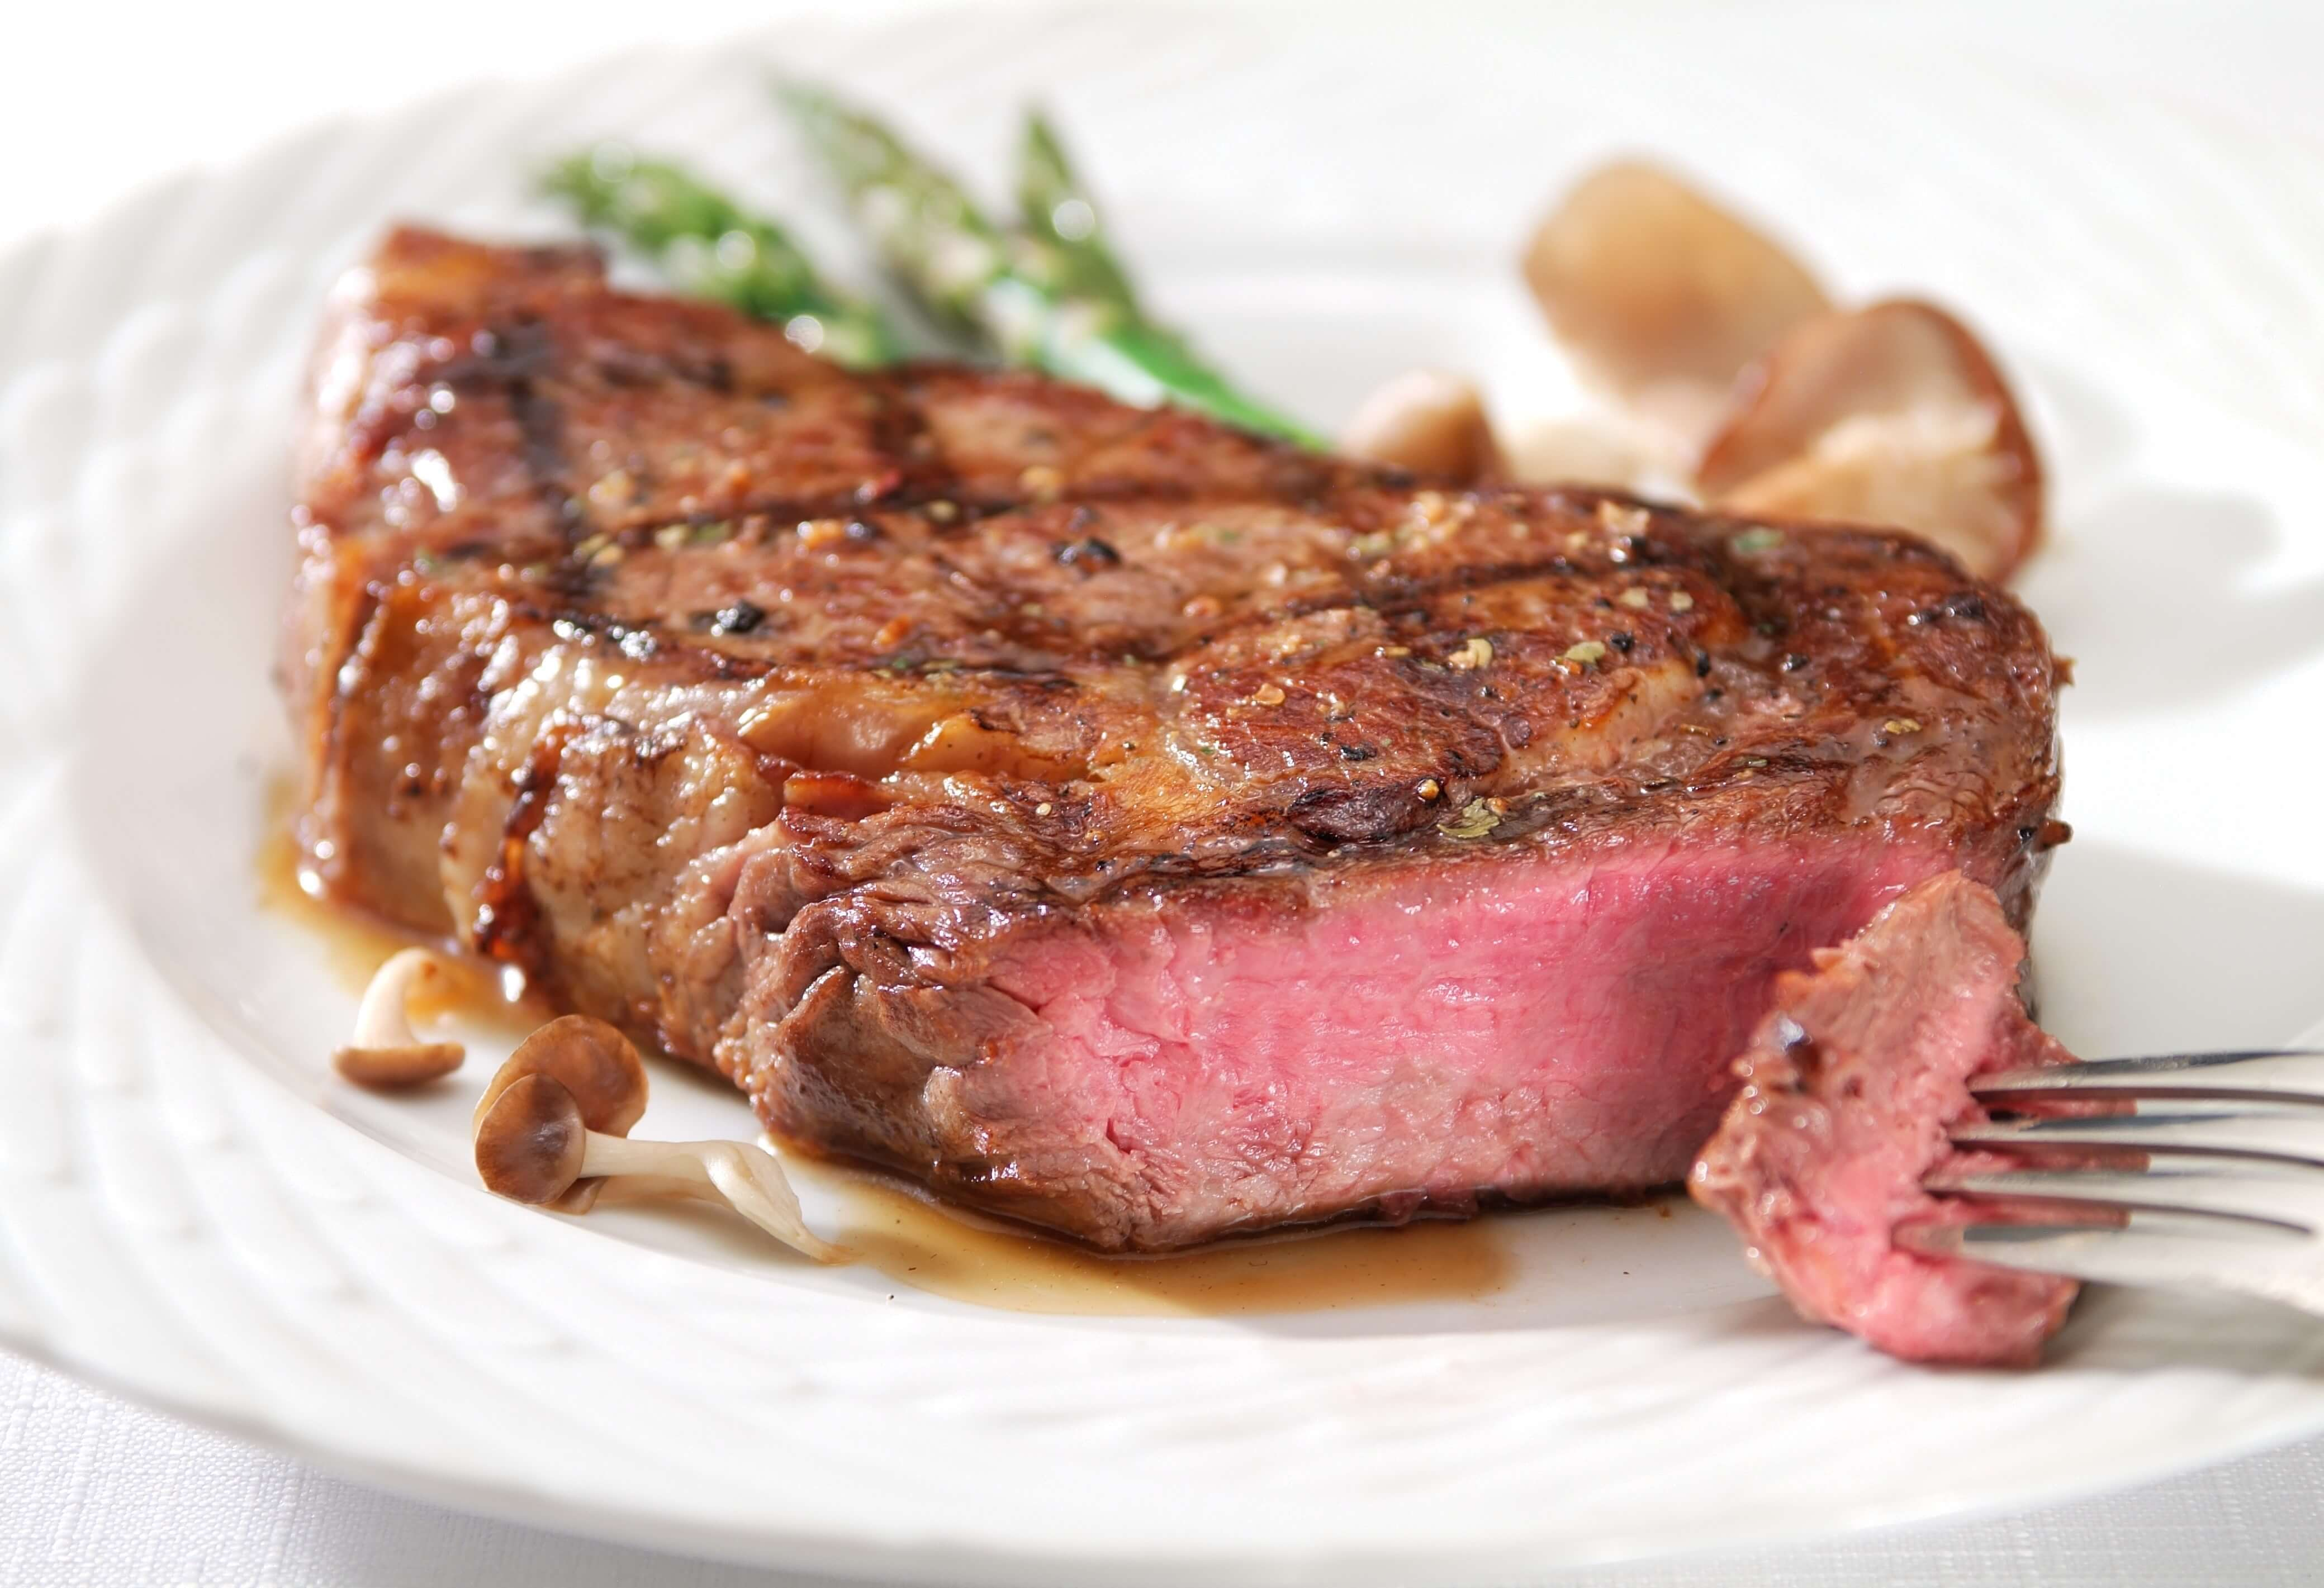 Beef Steak Pics